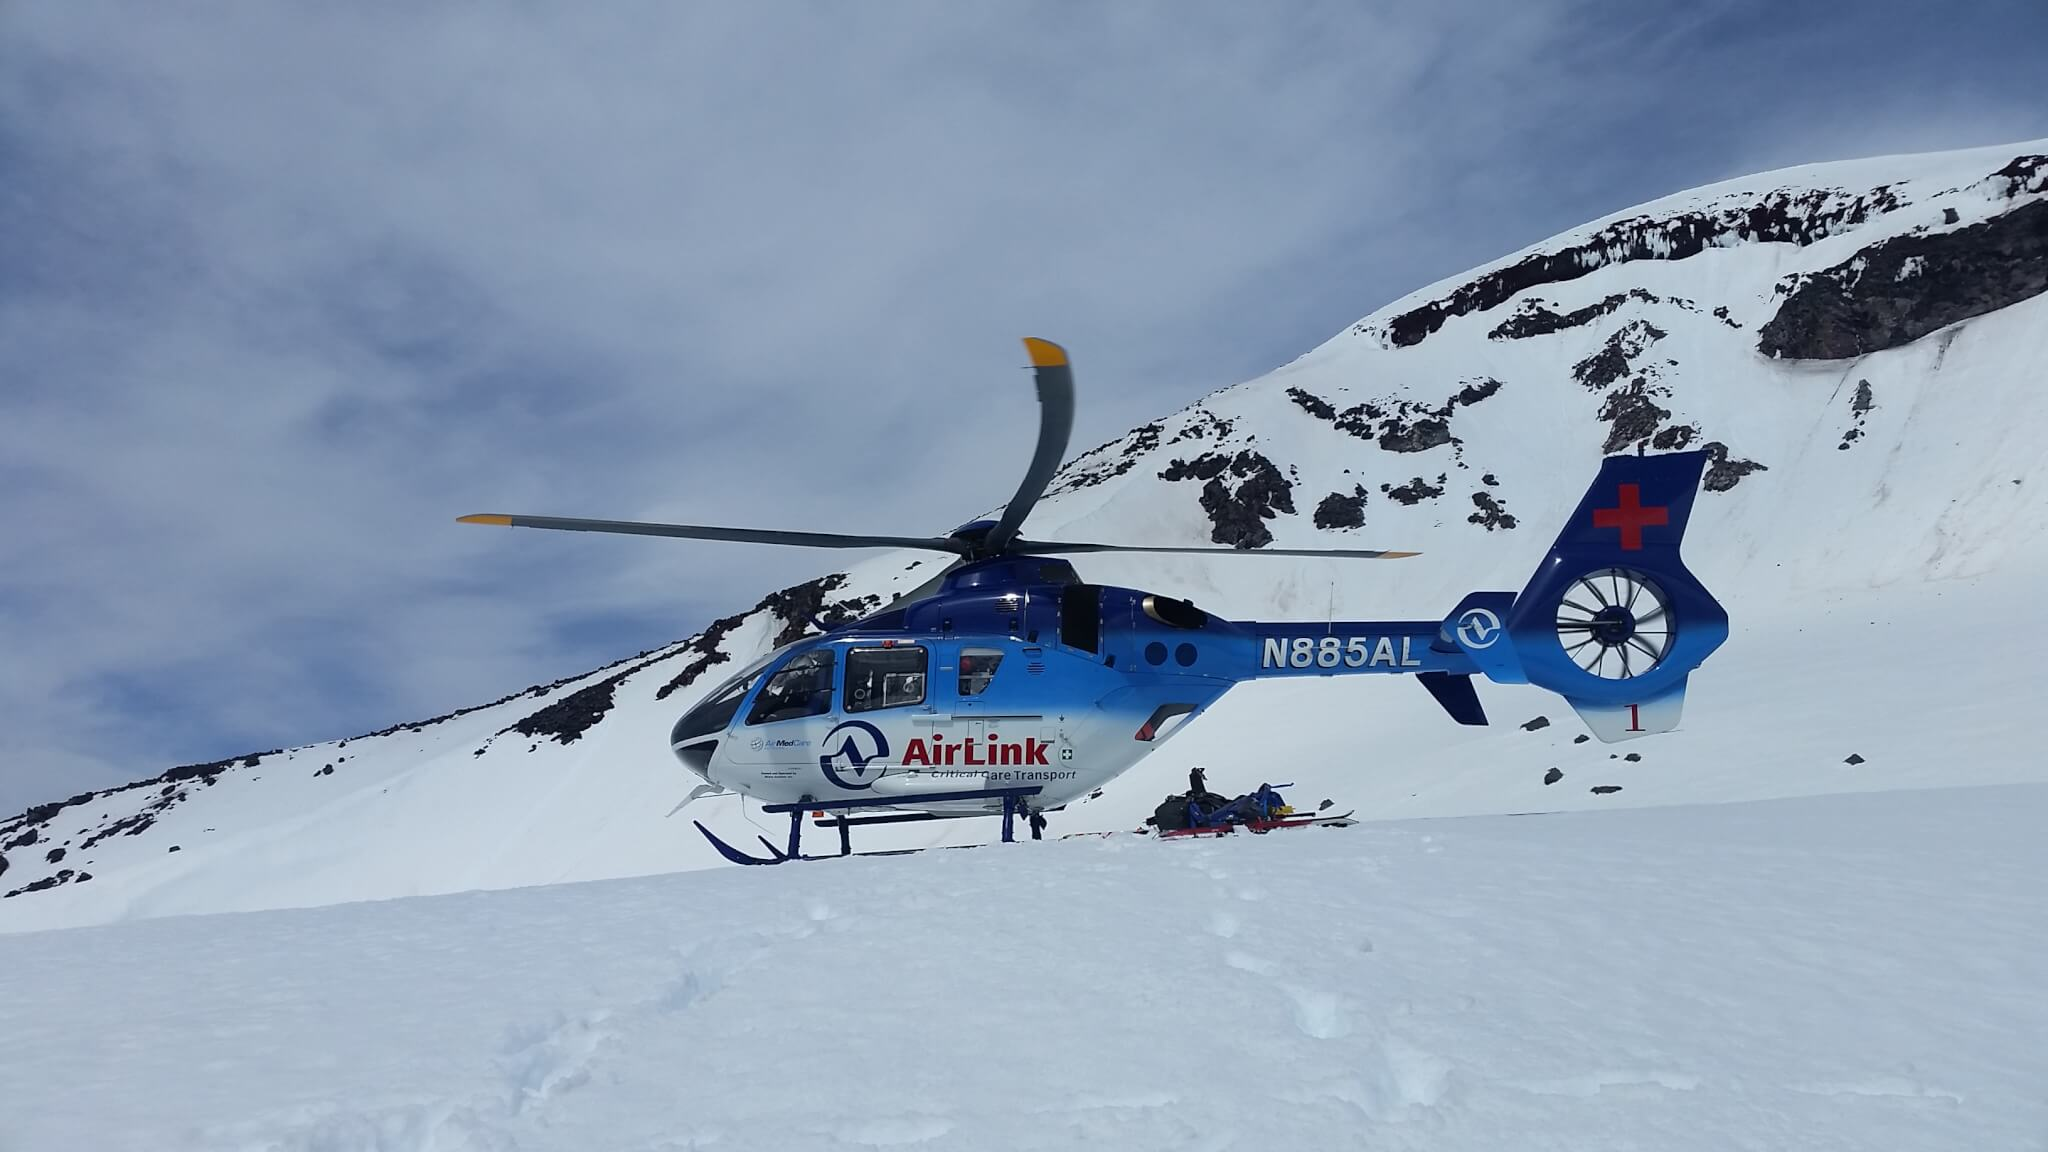 INJURED SKIER RESCUED OFF SOUTH SISTER